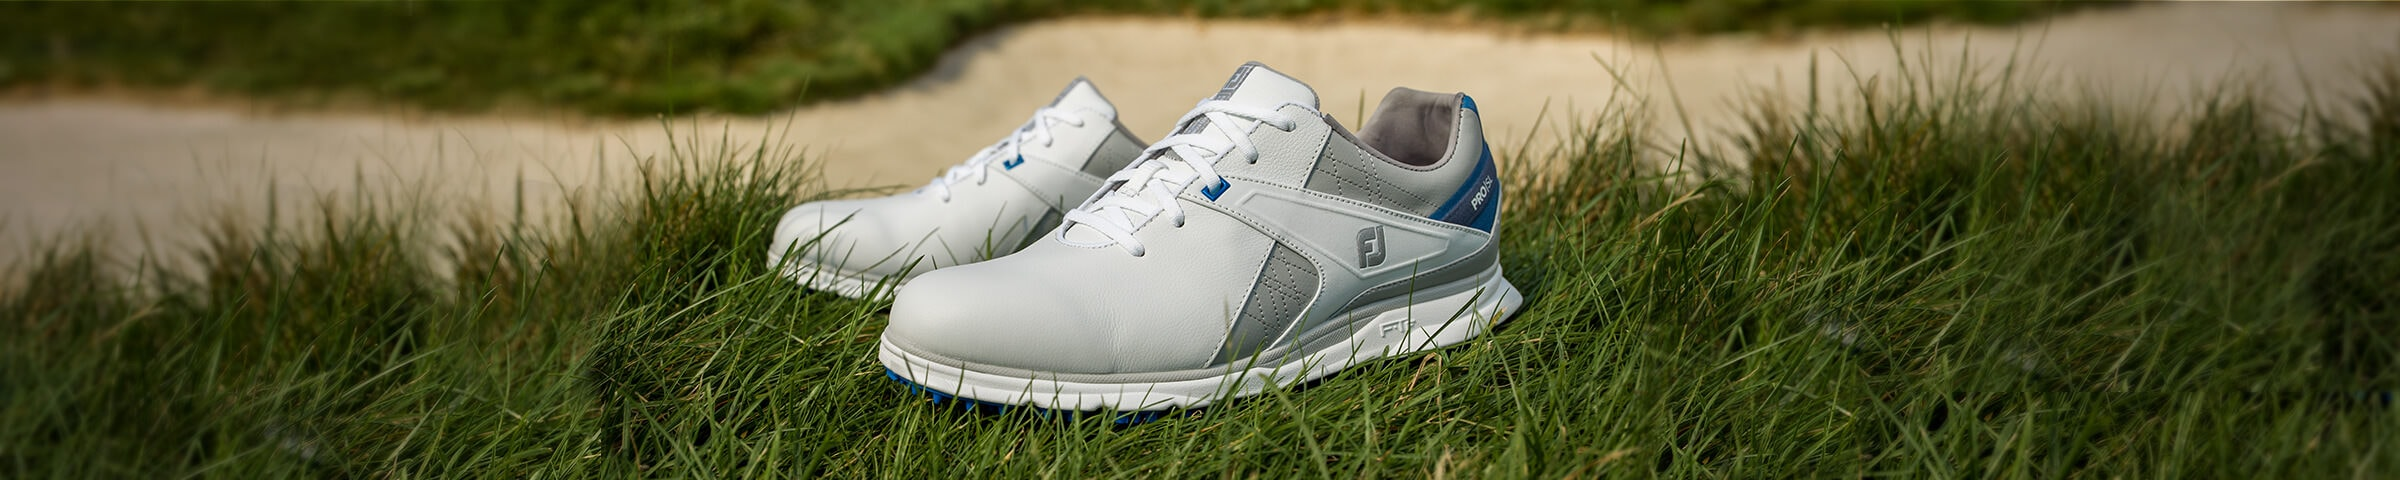 FootJoy New Pro|SL Spikeless Golf Shoes